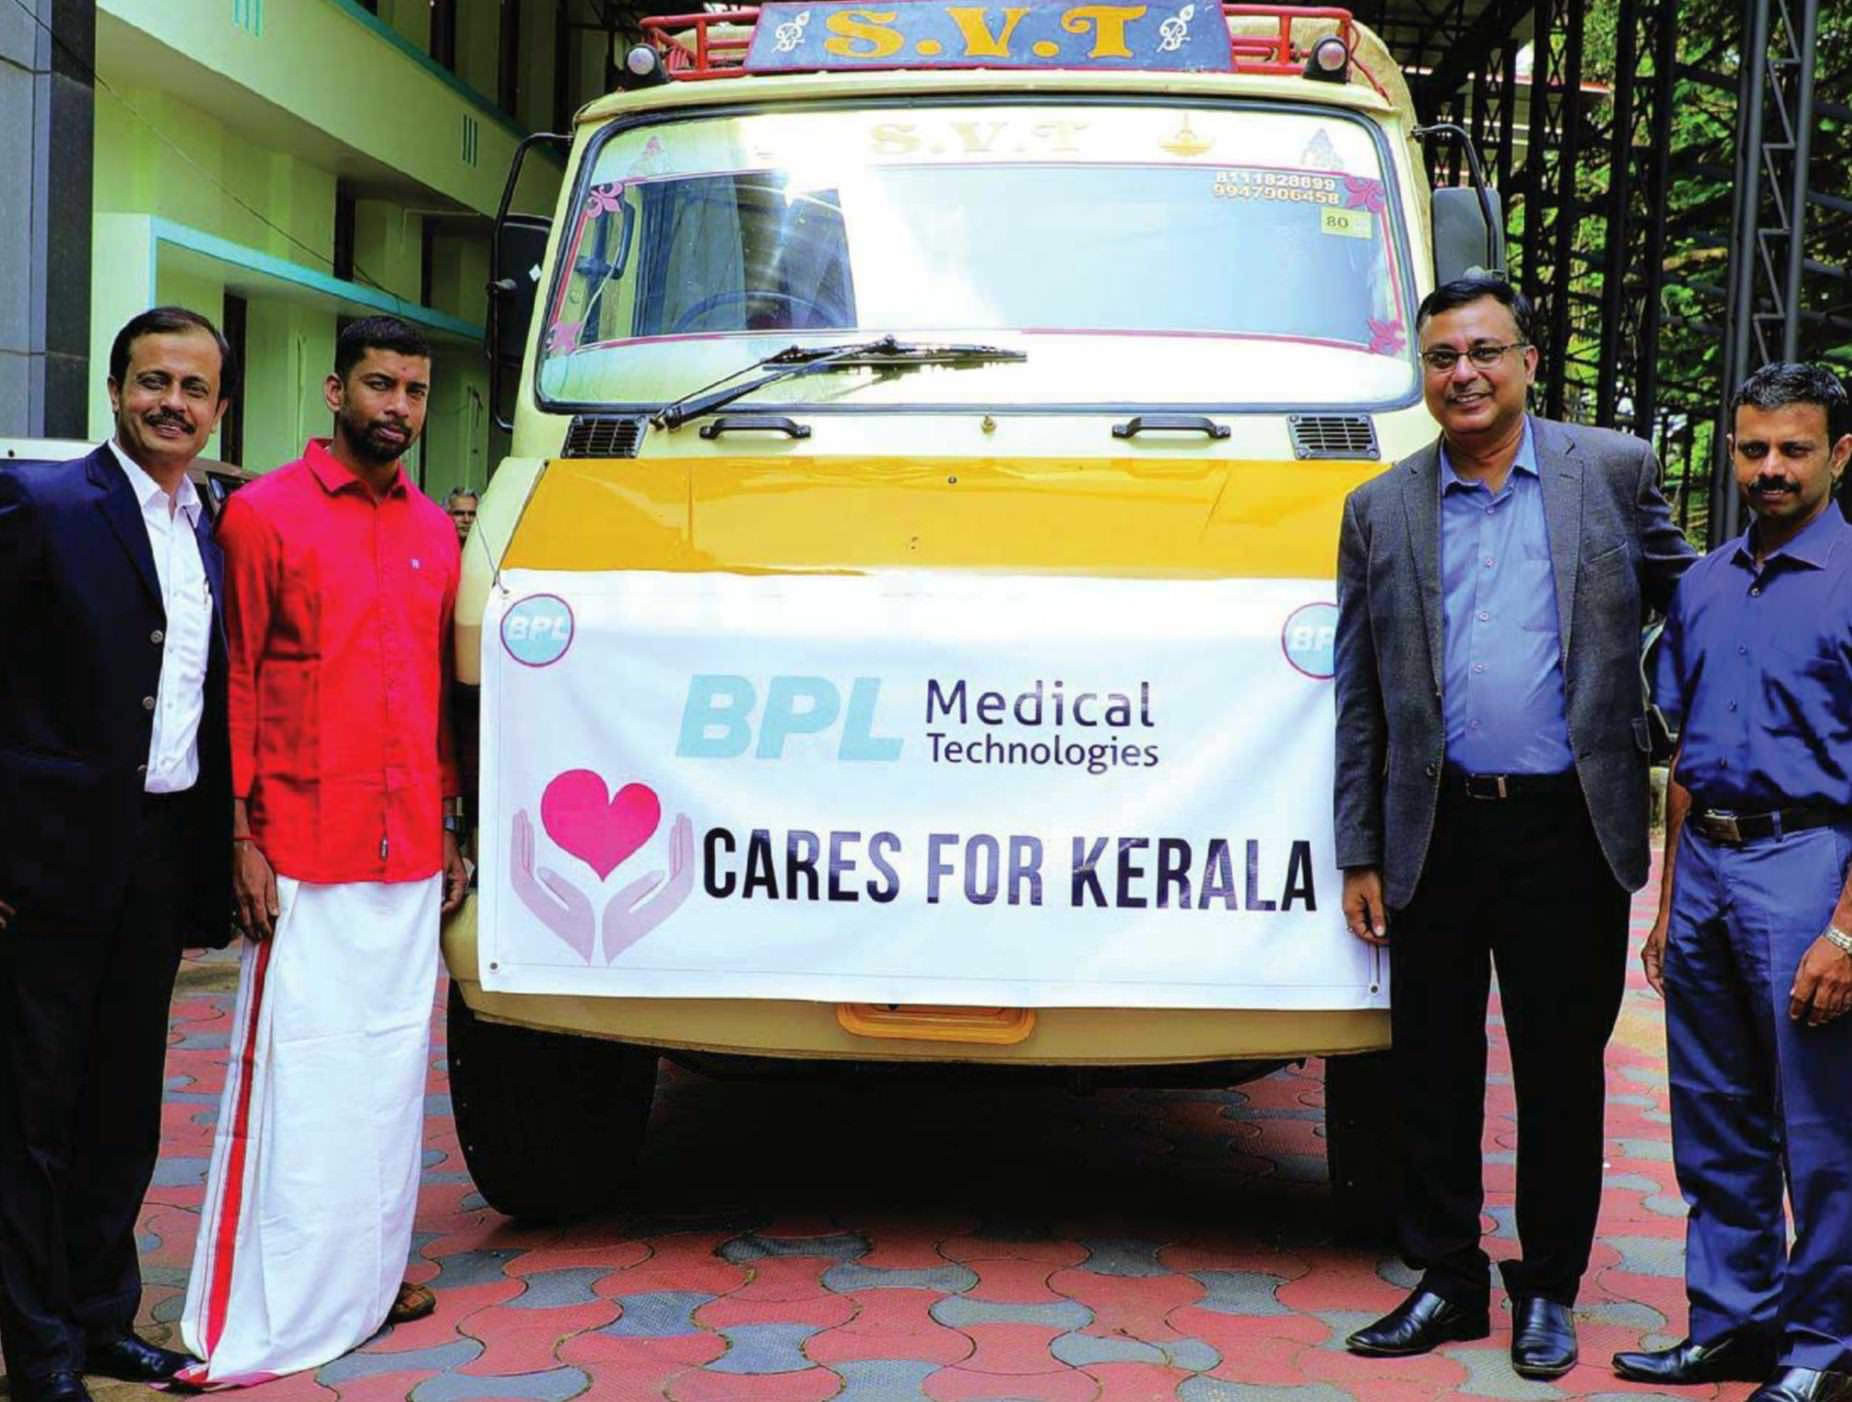 BPL Medical Technologies' Delivers Medical Devices As Part Of ' Care For Kerala' Campaign